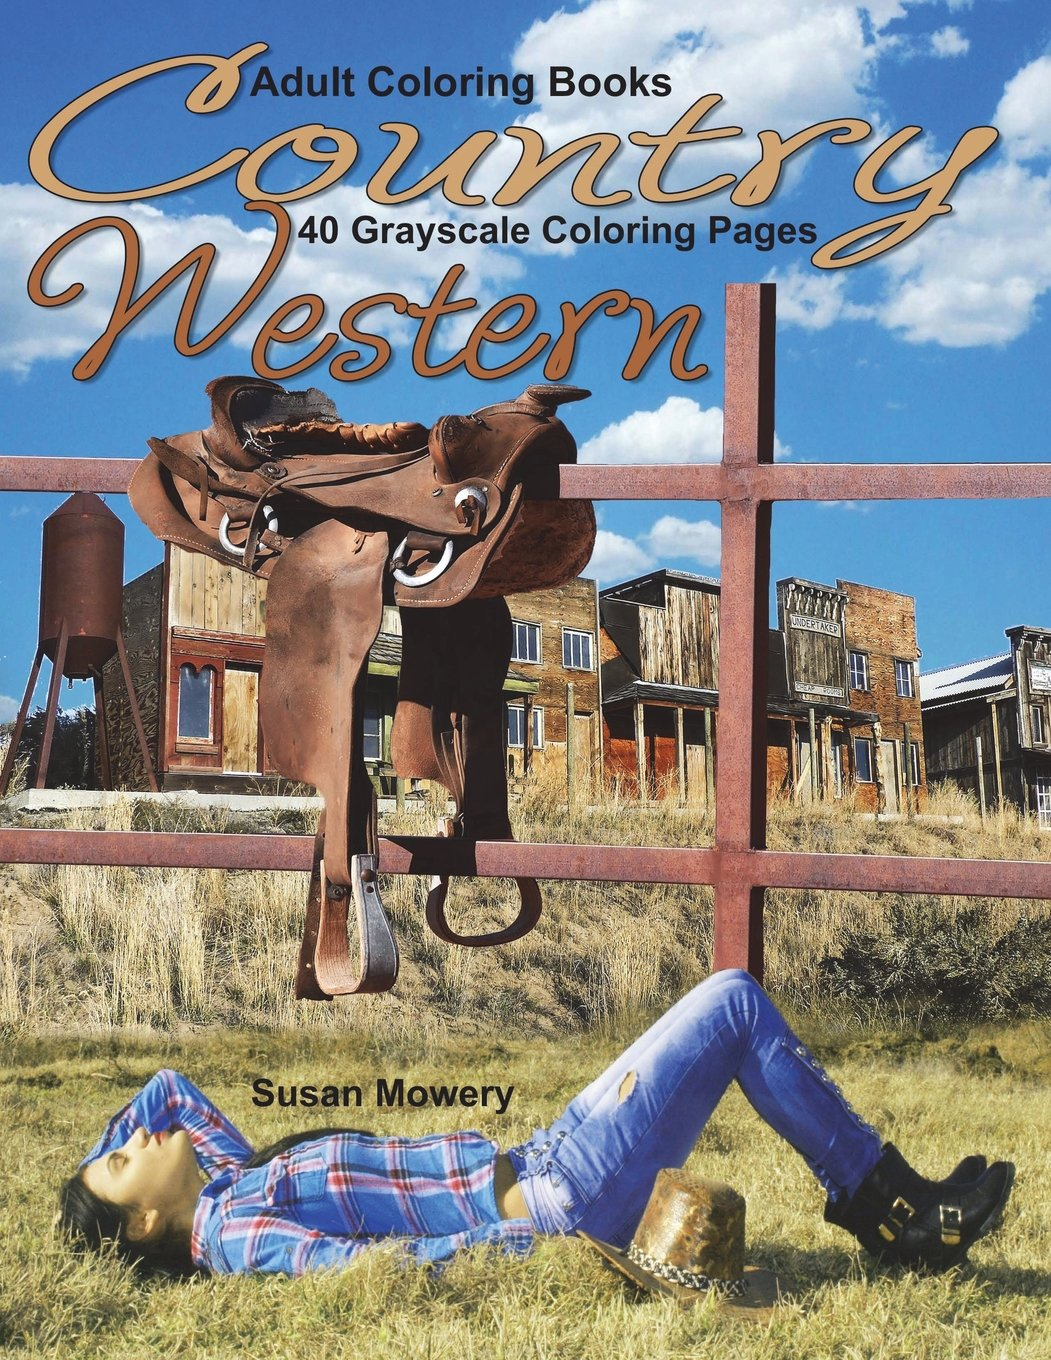 Read Online Adult Coloring Books Country Western: 40 grayscale Coloring Pages of country western scenes with farm animals, barns, farms, cowboys, Indians, horses and more ebook